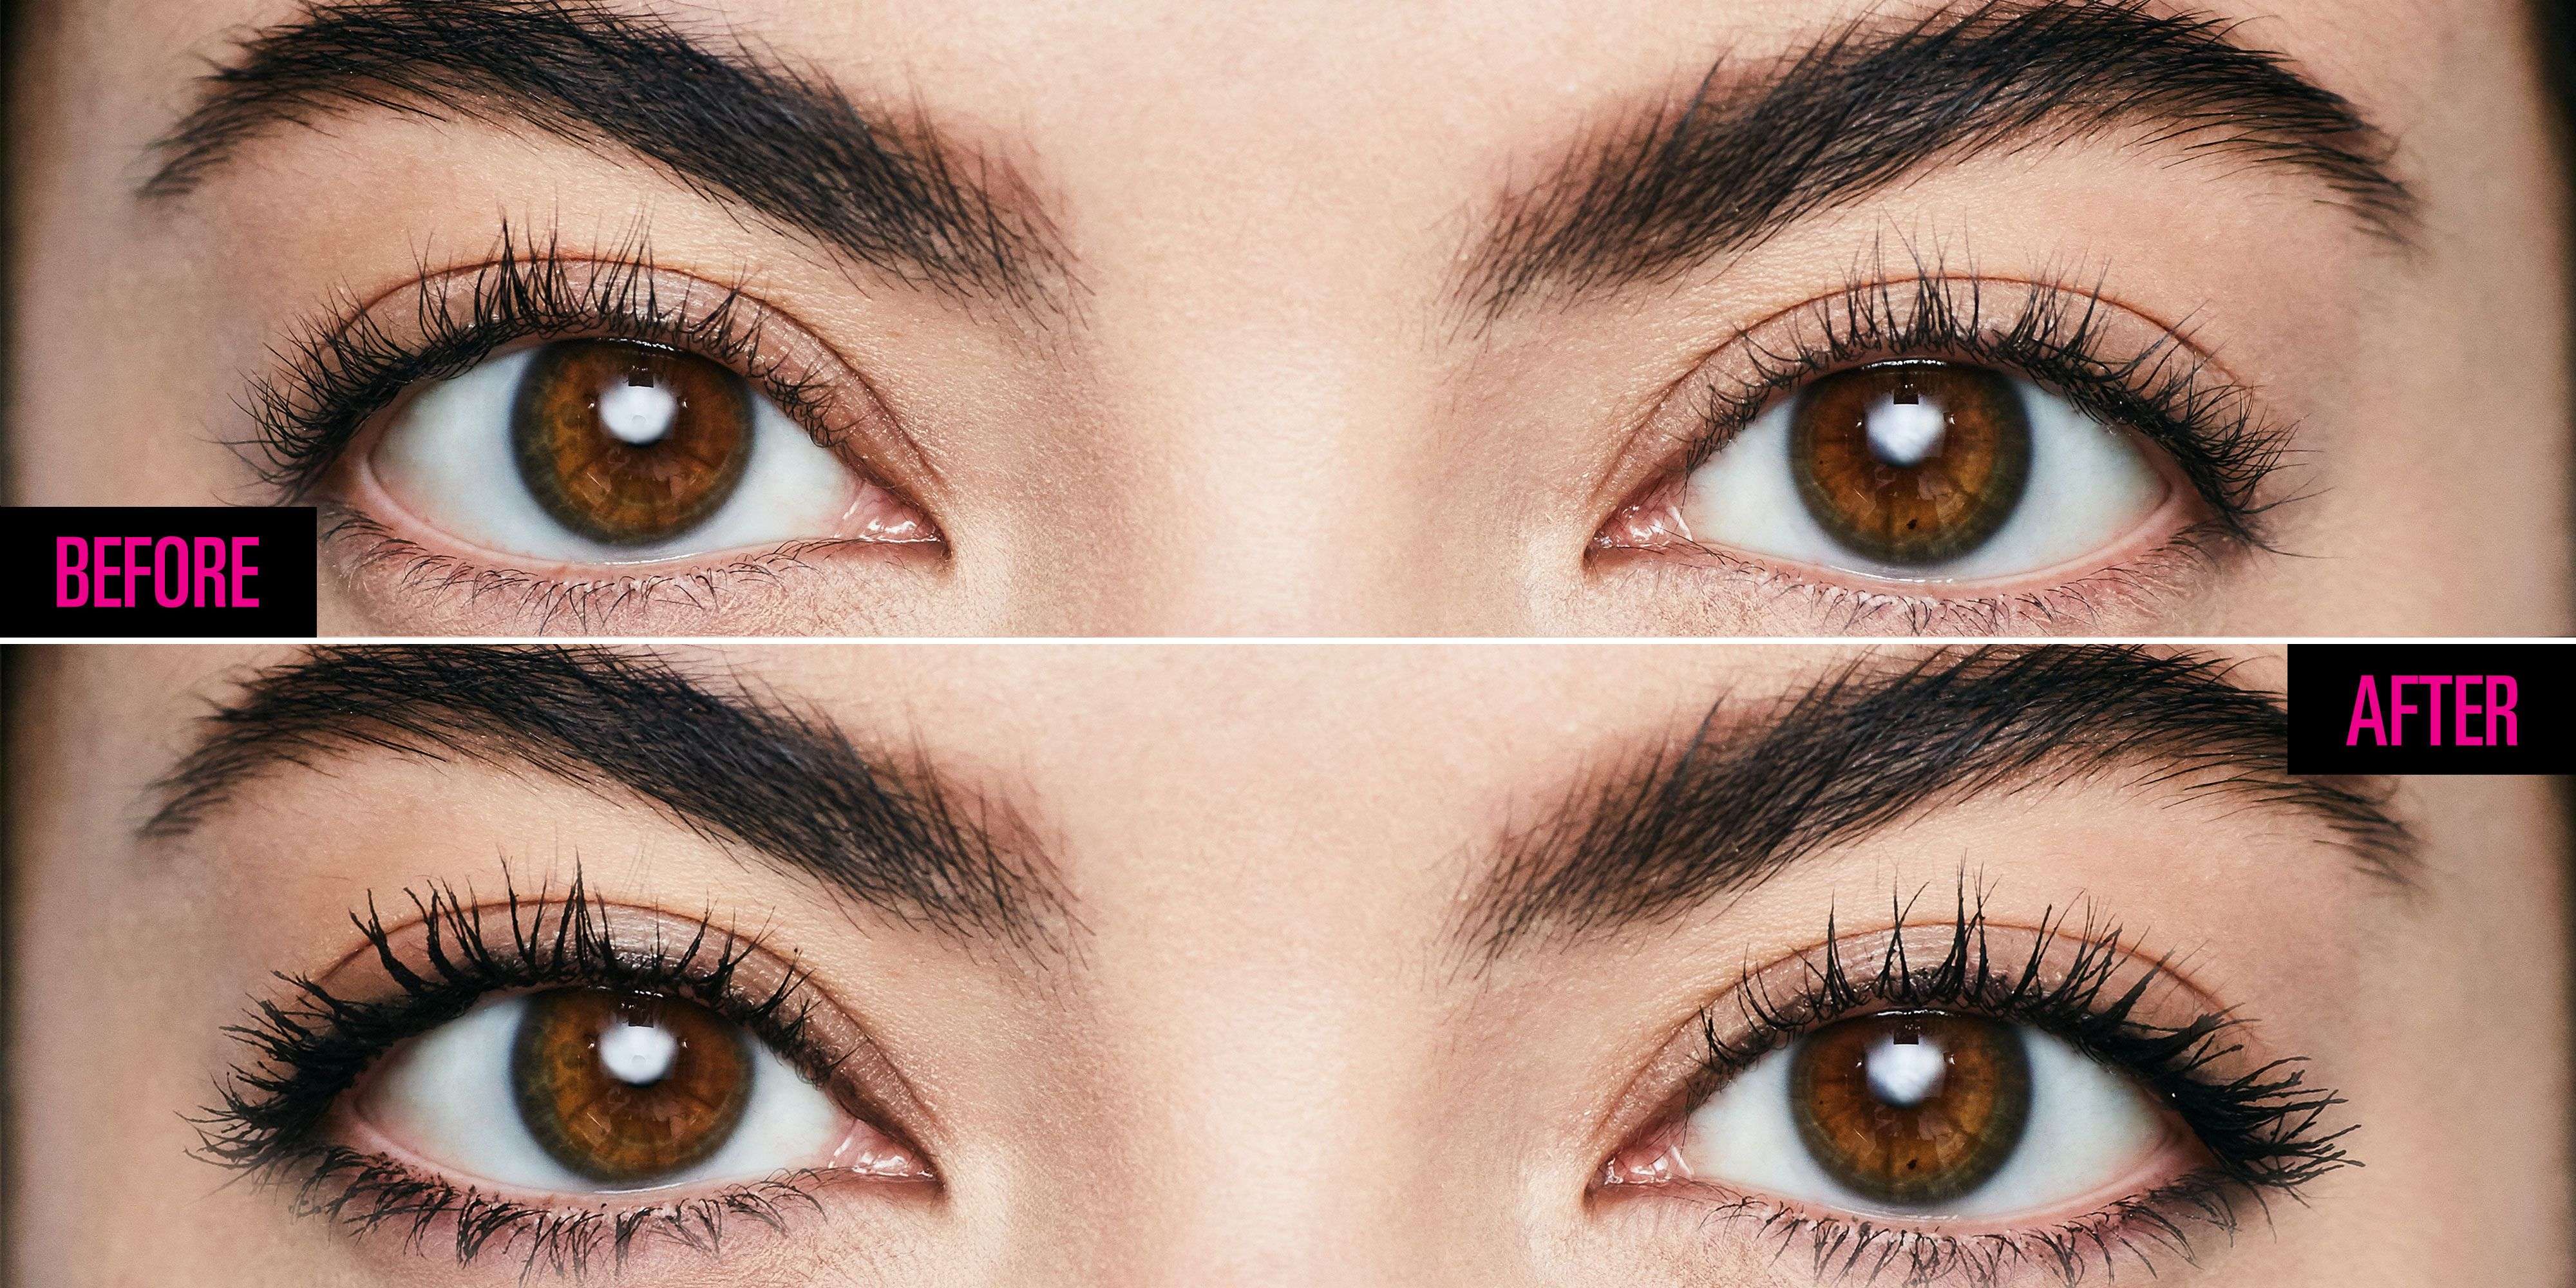 How to Get Great Lashes - Eyelash Tips